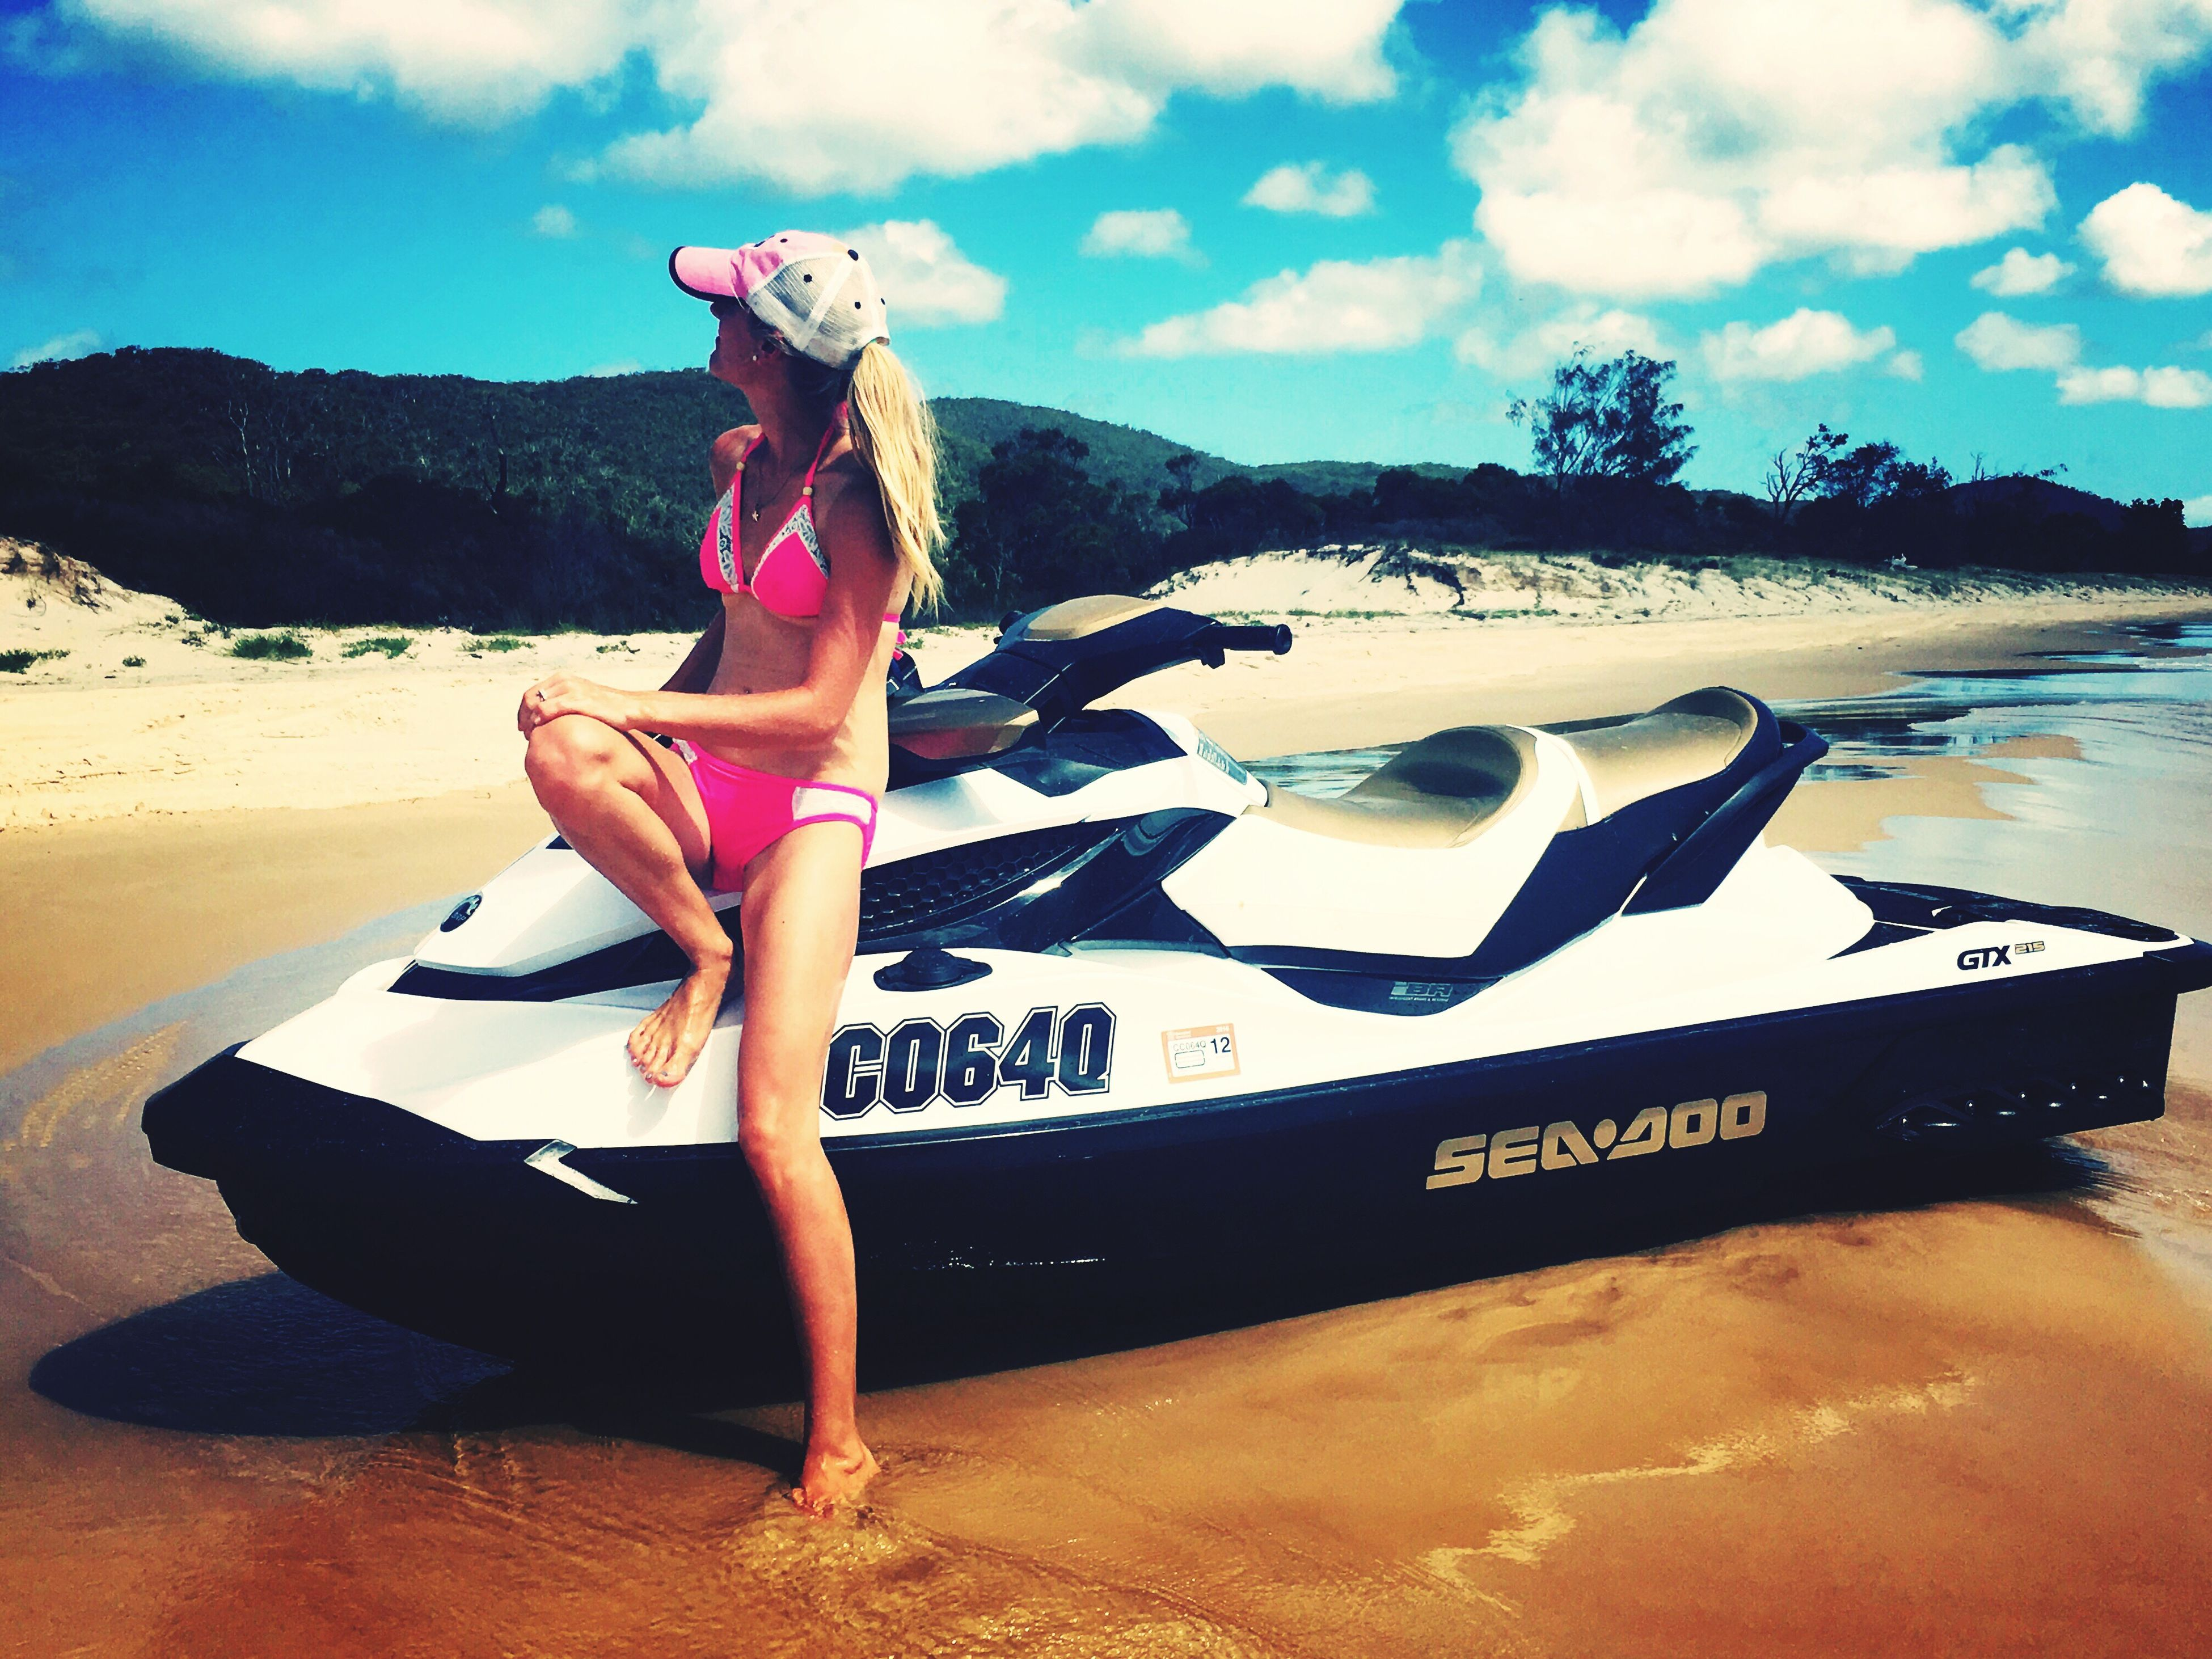 Seadoo And Me One Love If You Can Dream It You Can Do It